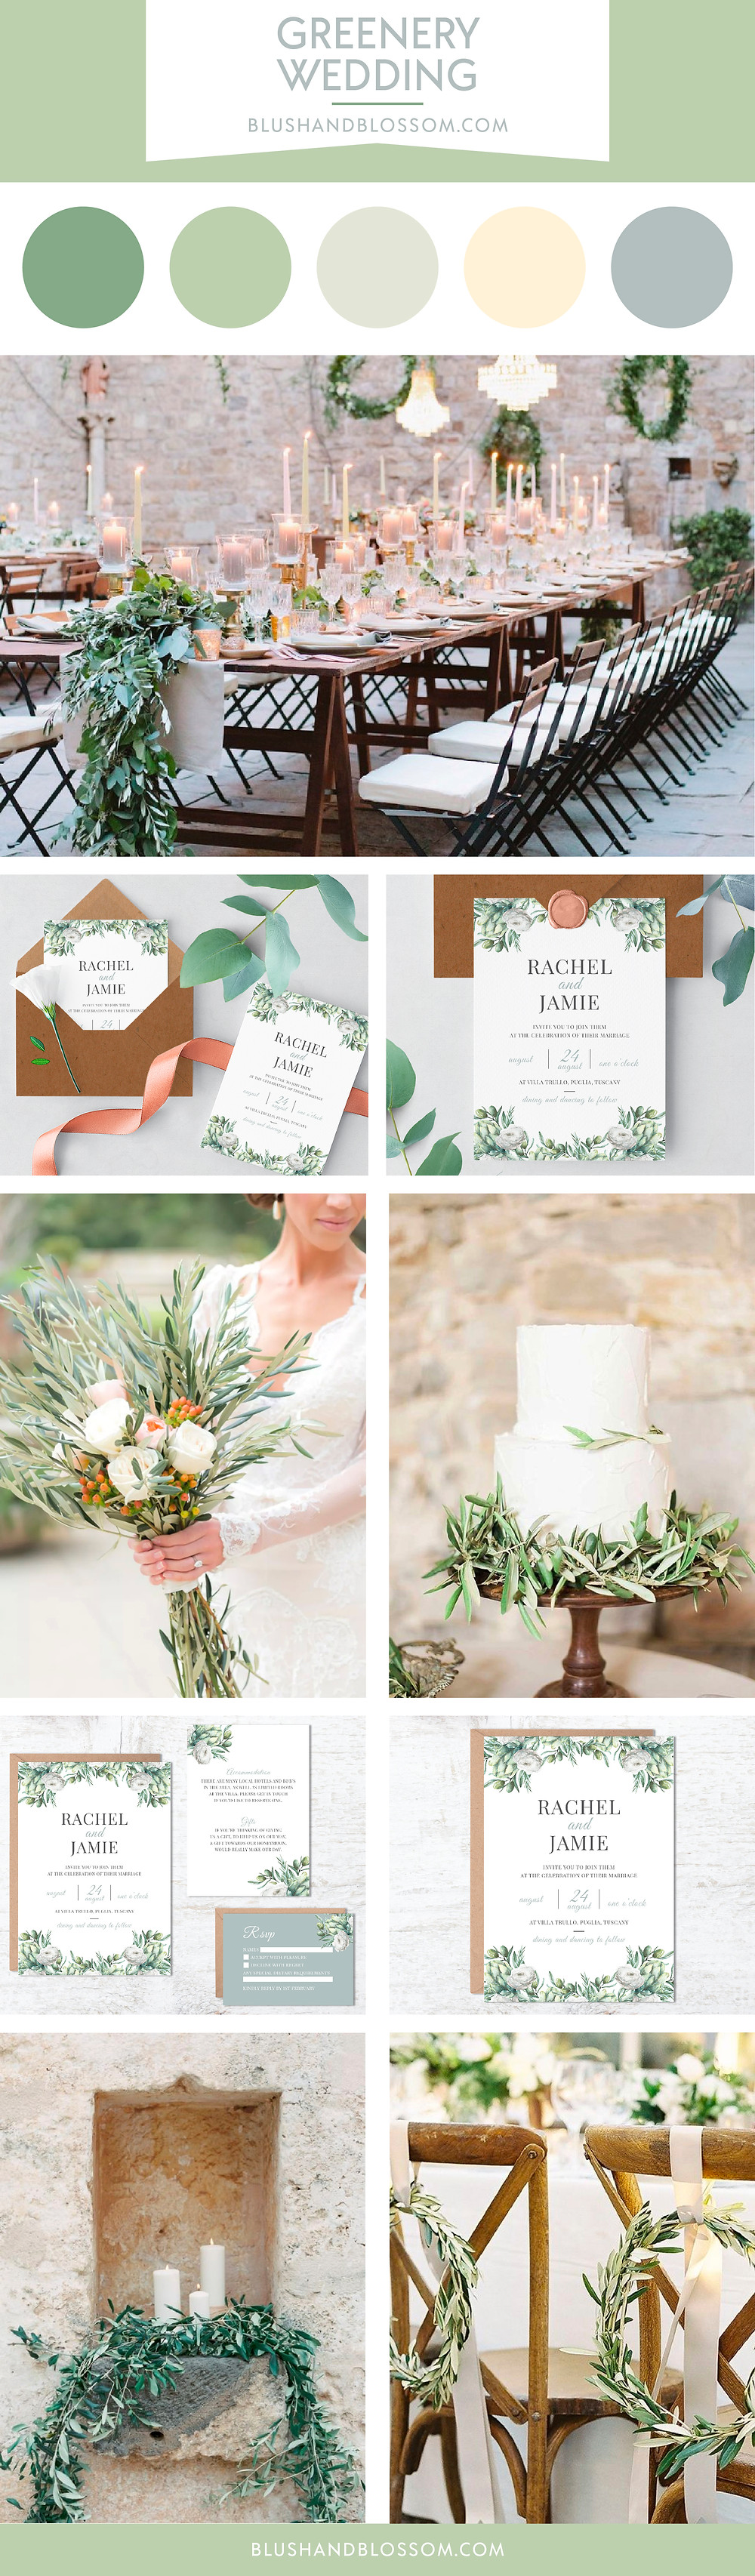 Greenery wedding theme ideas and inspiration